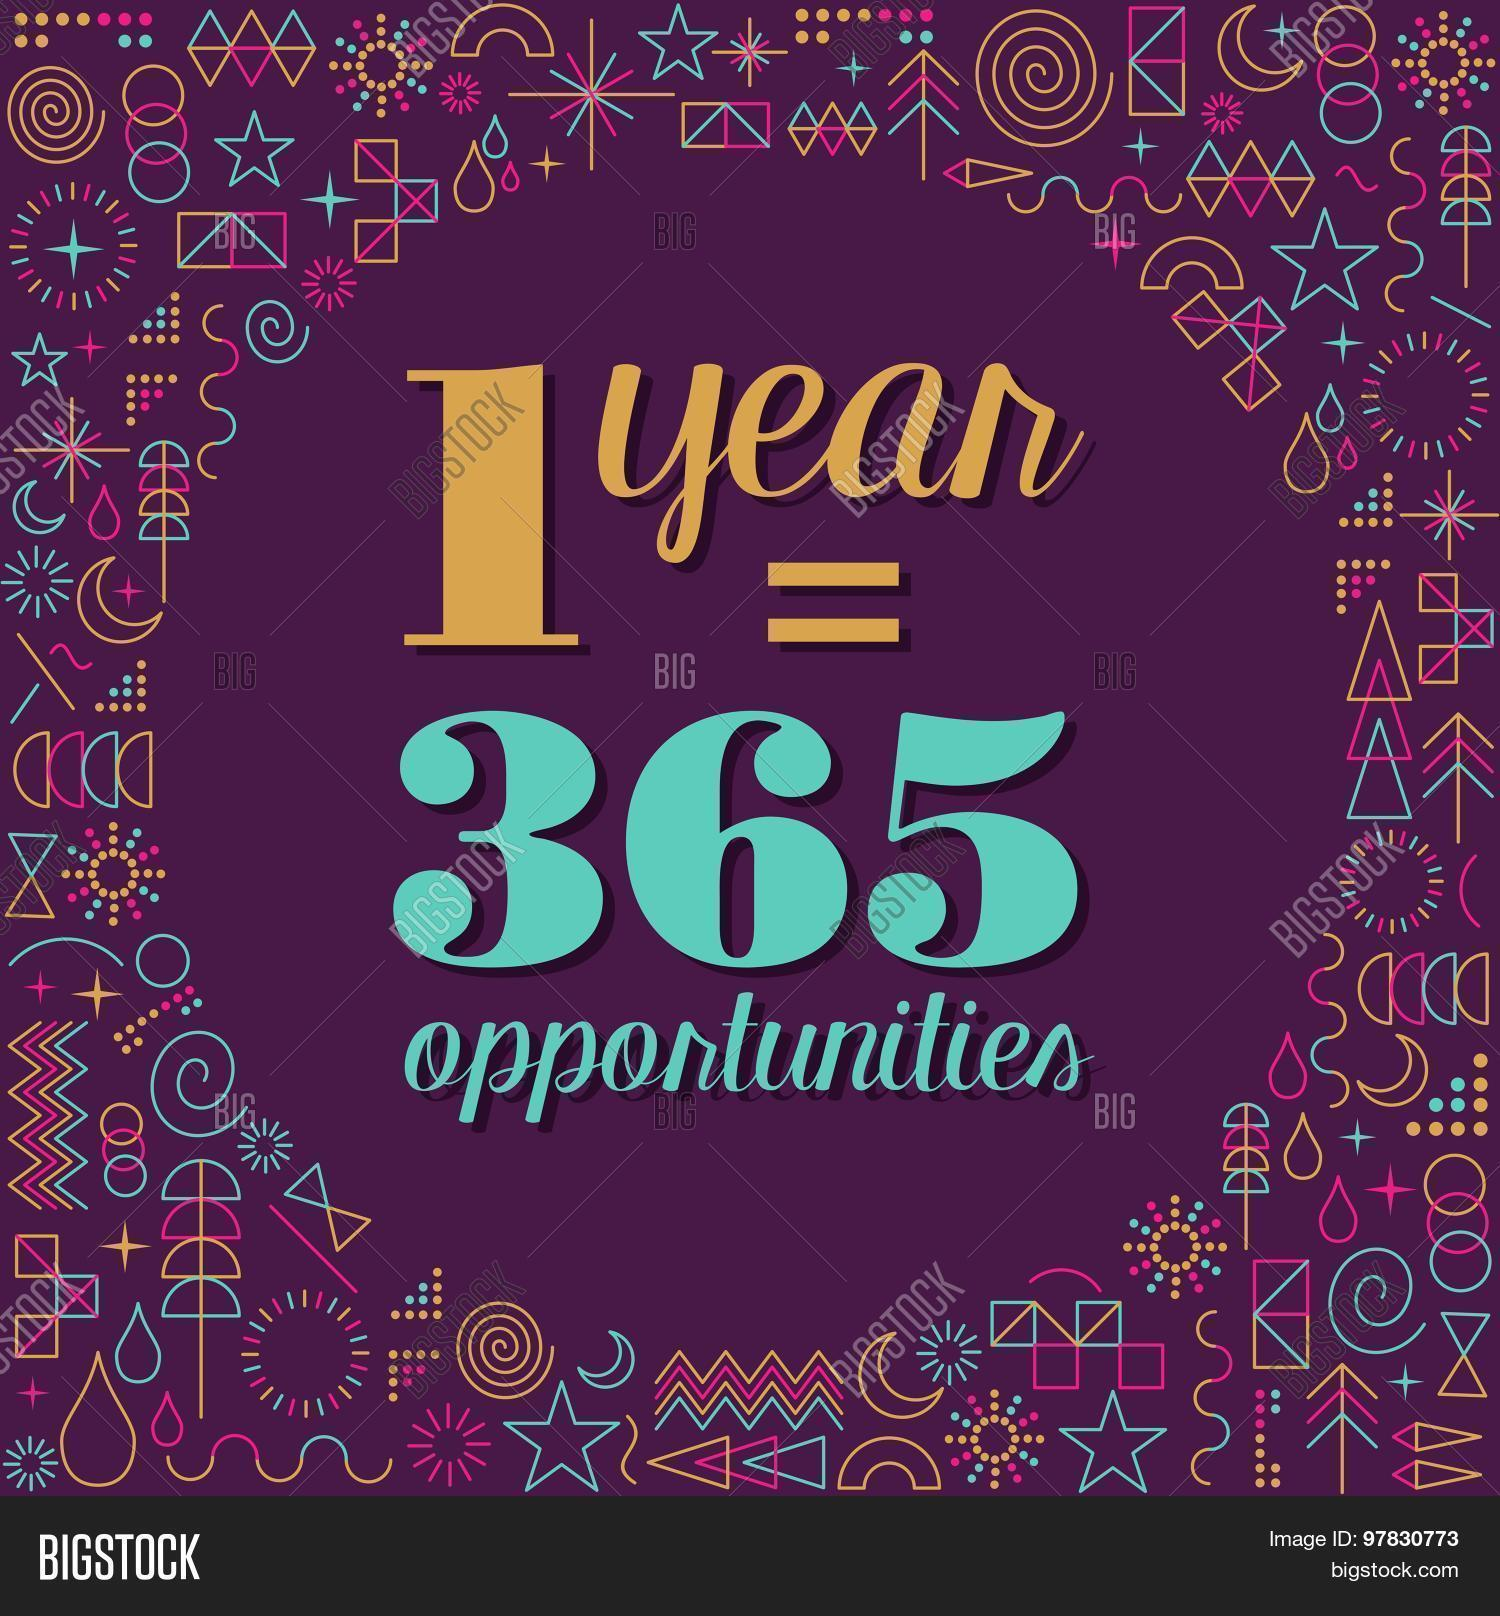 Quote poster design inspiration - New Year Inspiration Quote Poster Design